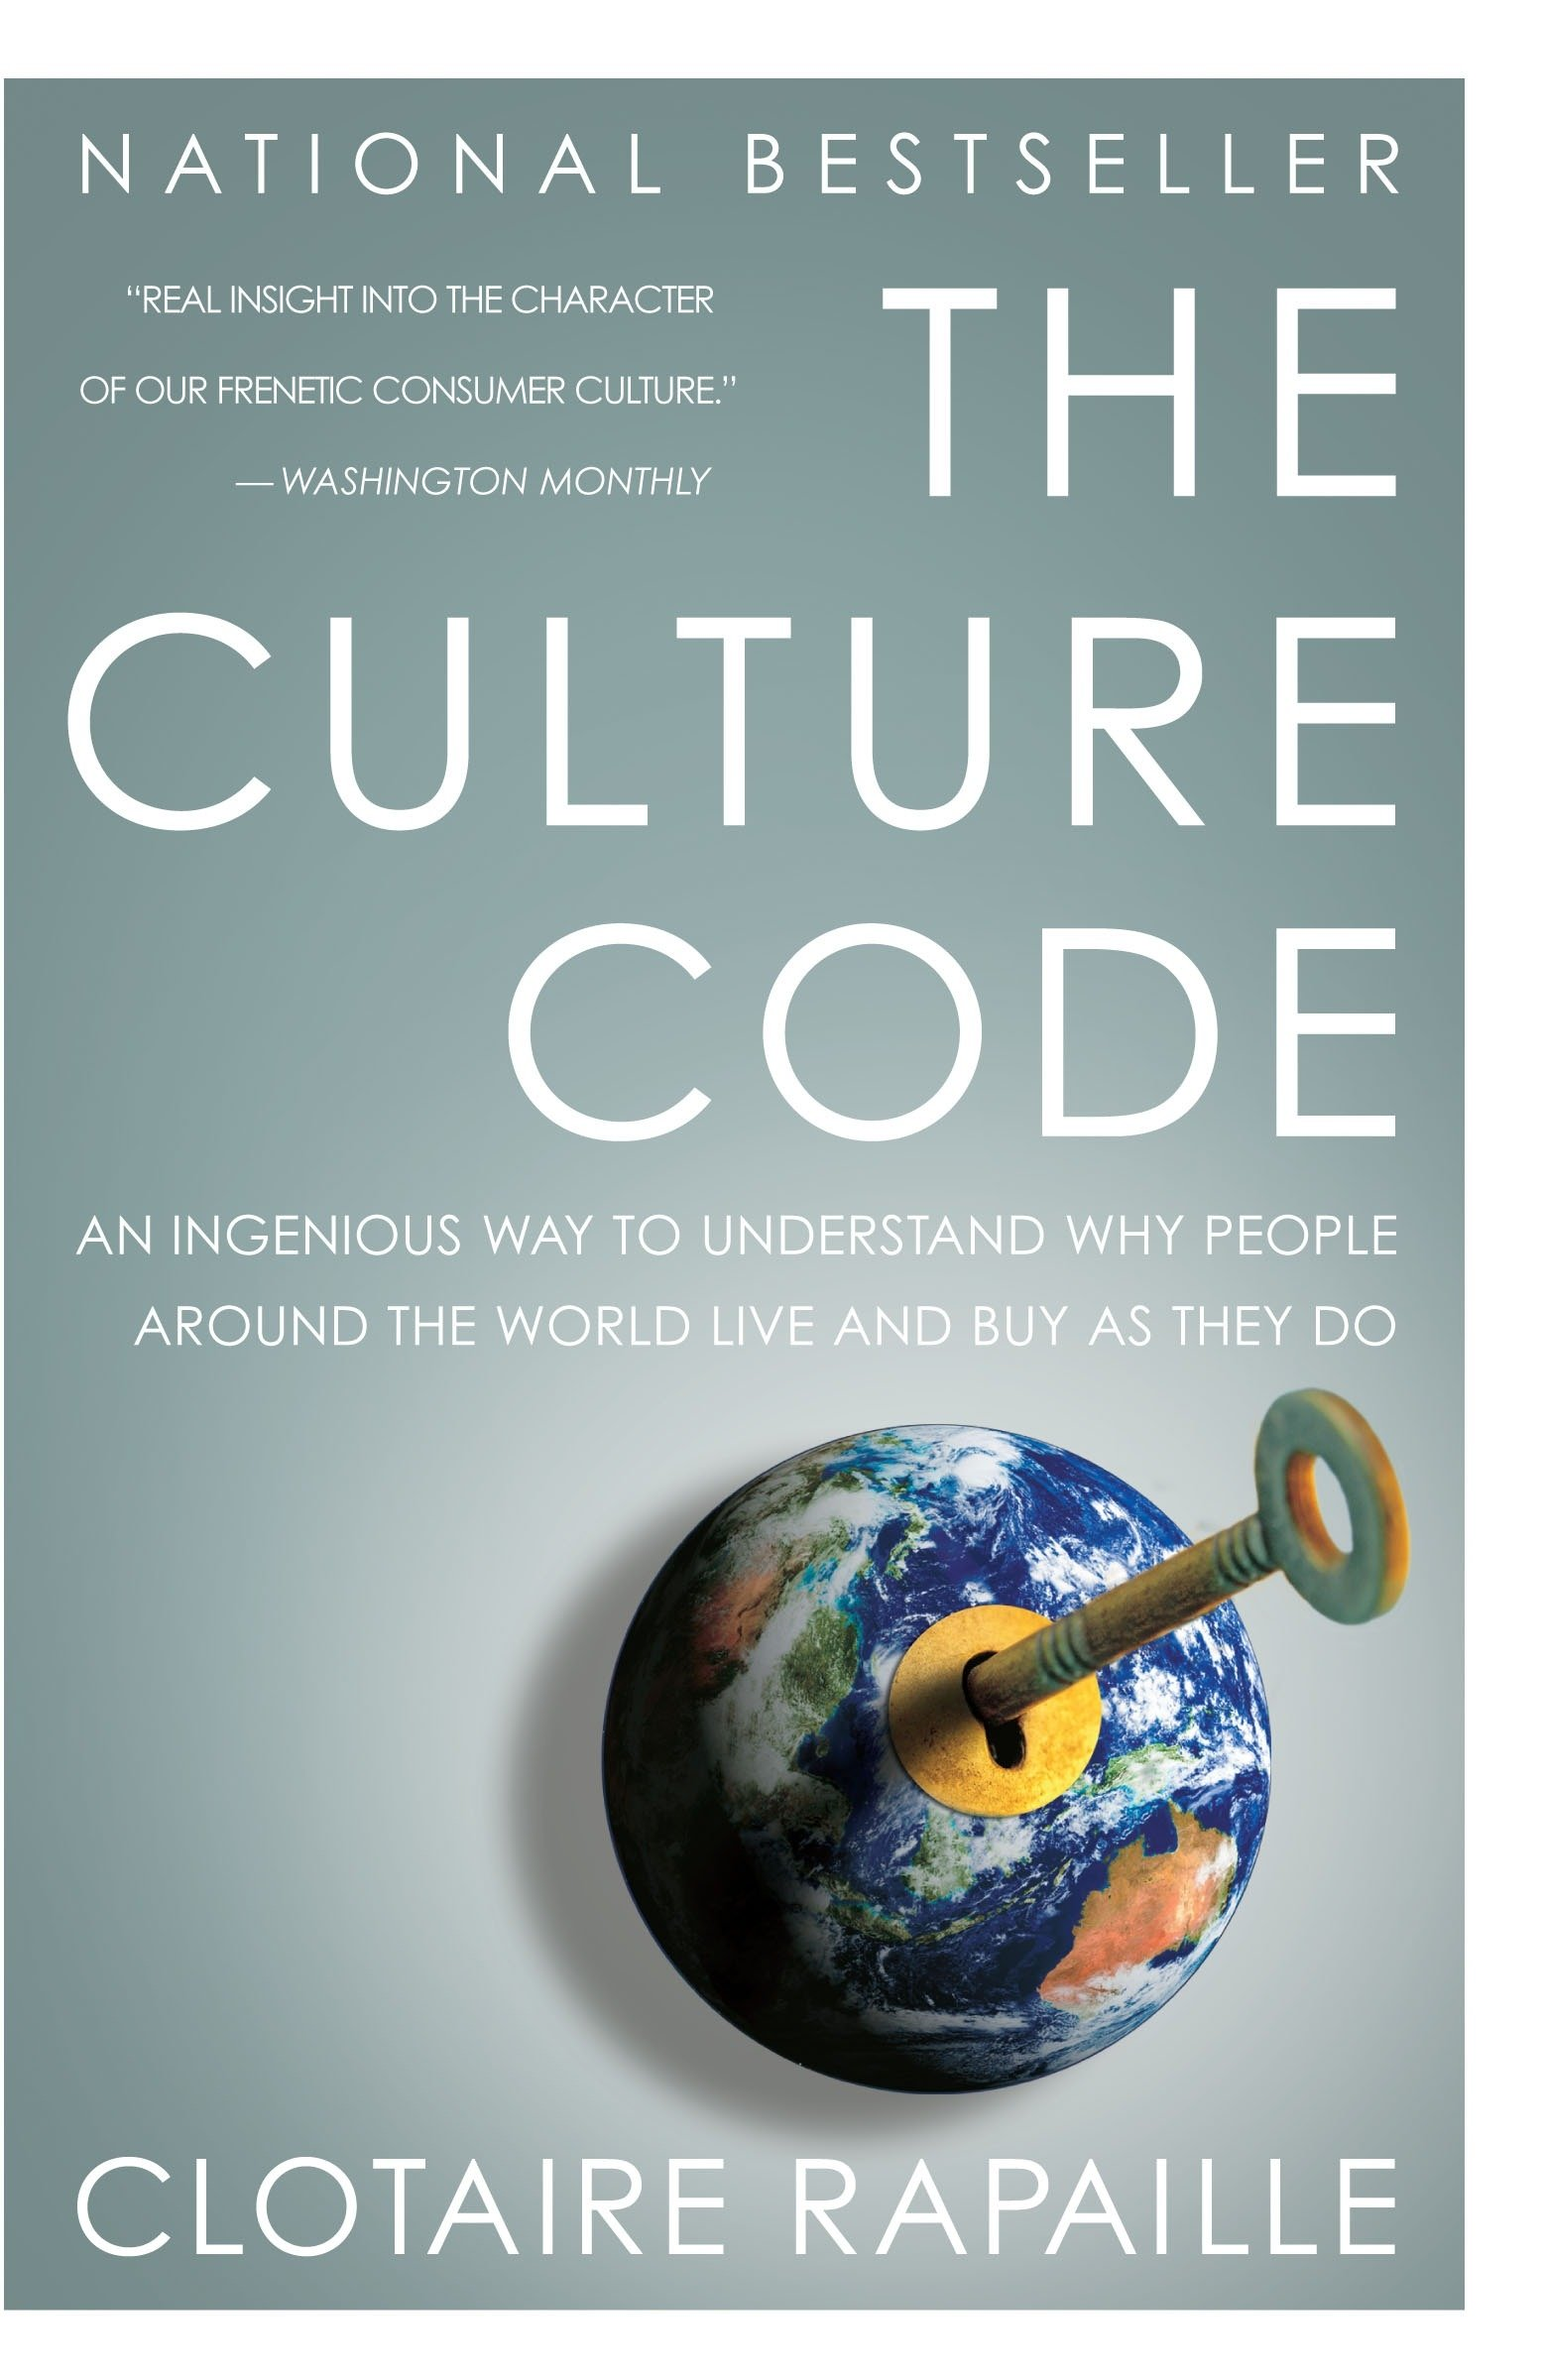 Image OfThe Culture Code: An Ingenious Way To Understand Why People Around The World Live And Buy As They Do